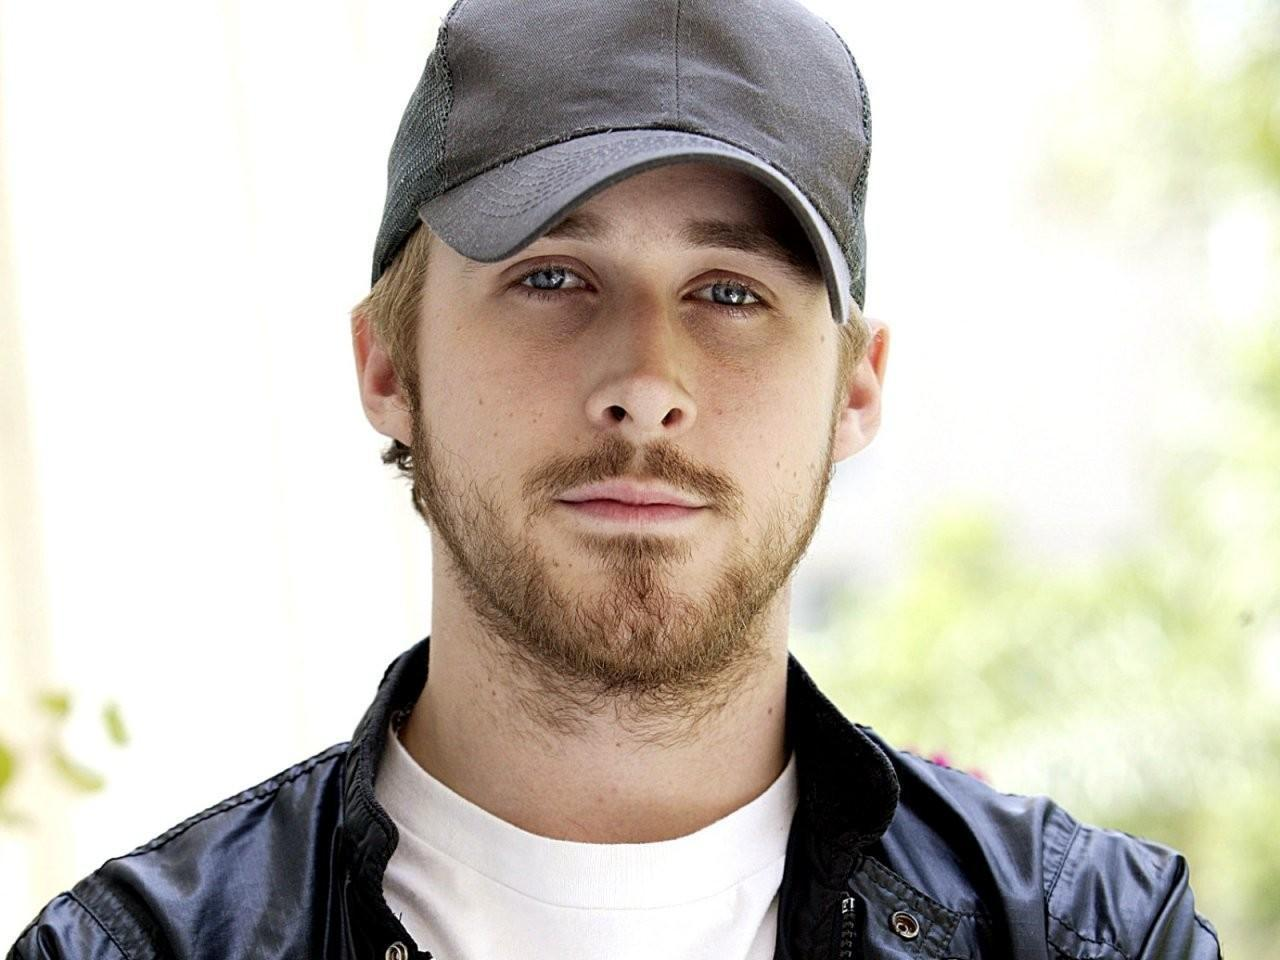 Ryan Gosling Wallpapers: ryan gosling wallpapers Collections